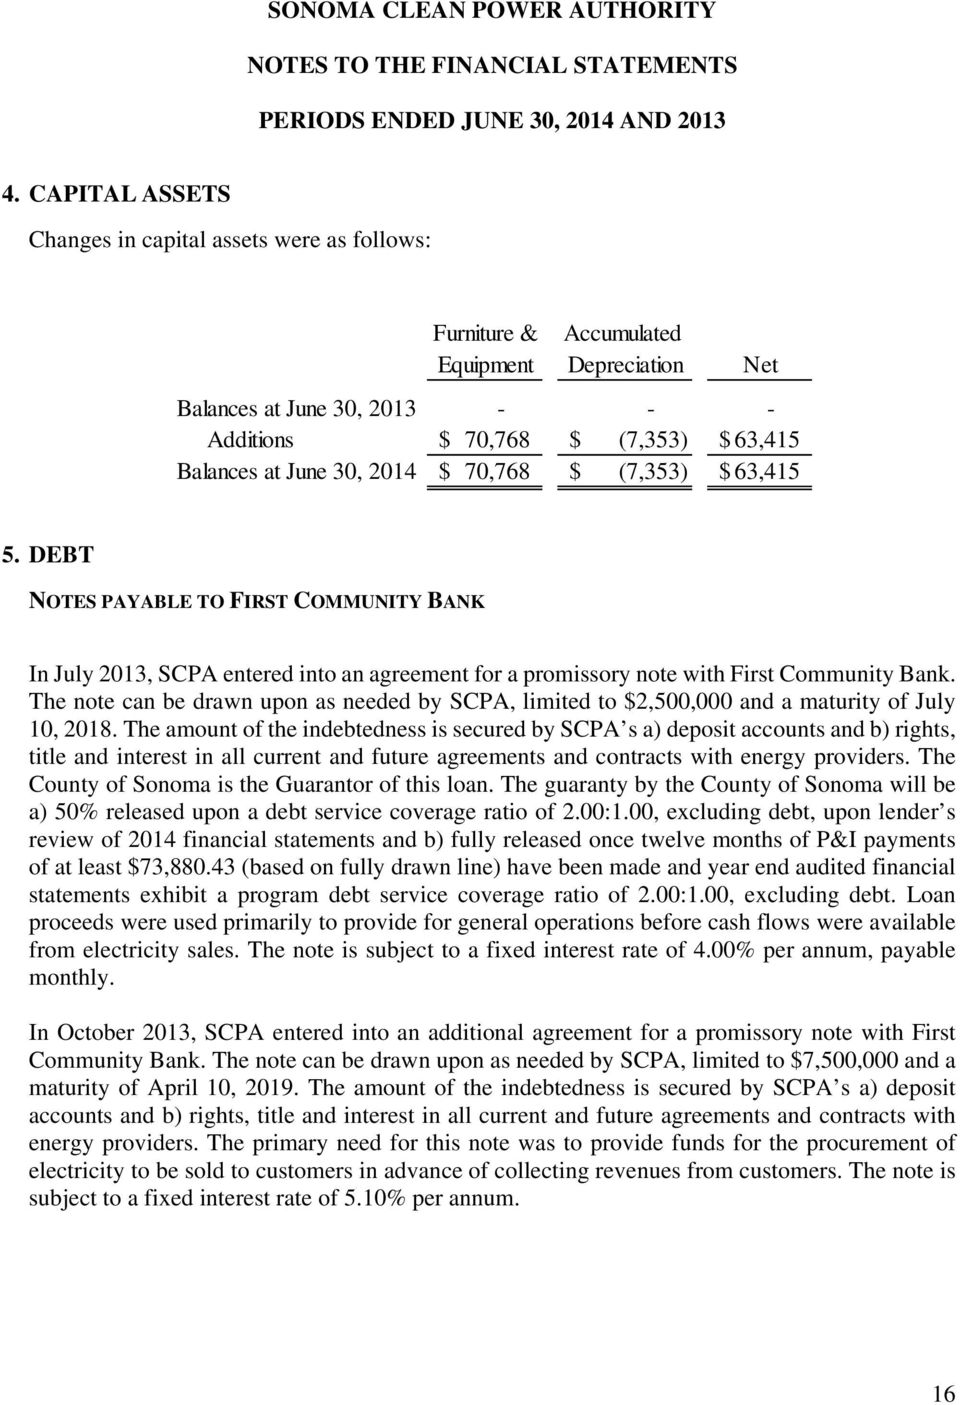 2014 $ 70,768 $ (7,353) $ 63,415 5. DEBT NOTES PAYABLE TO FIRST COMMUNITY BANK In July 2013, SCPA entered into an agreement for a promissory note with First Community Bank.